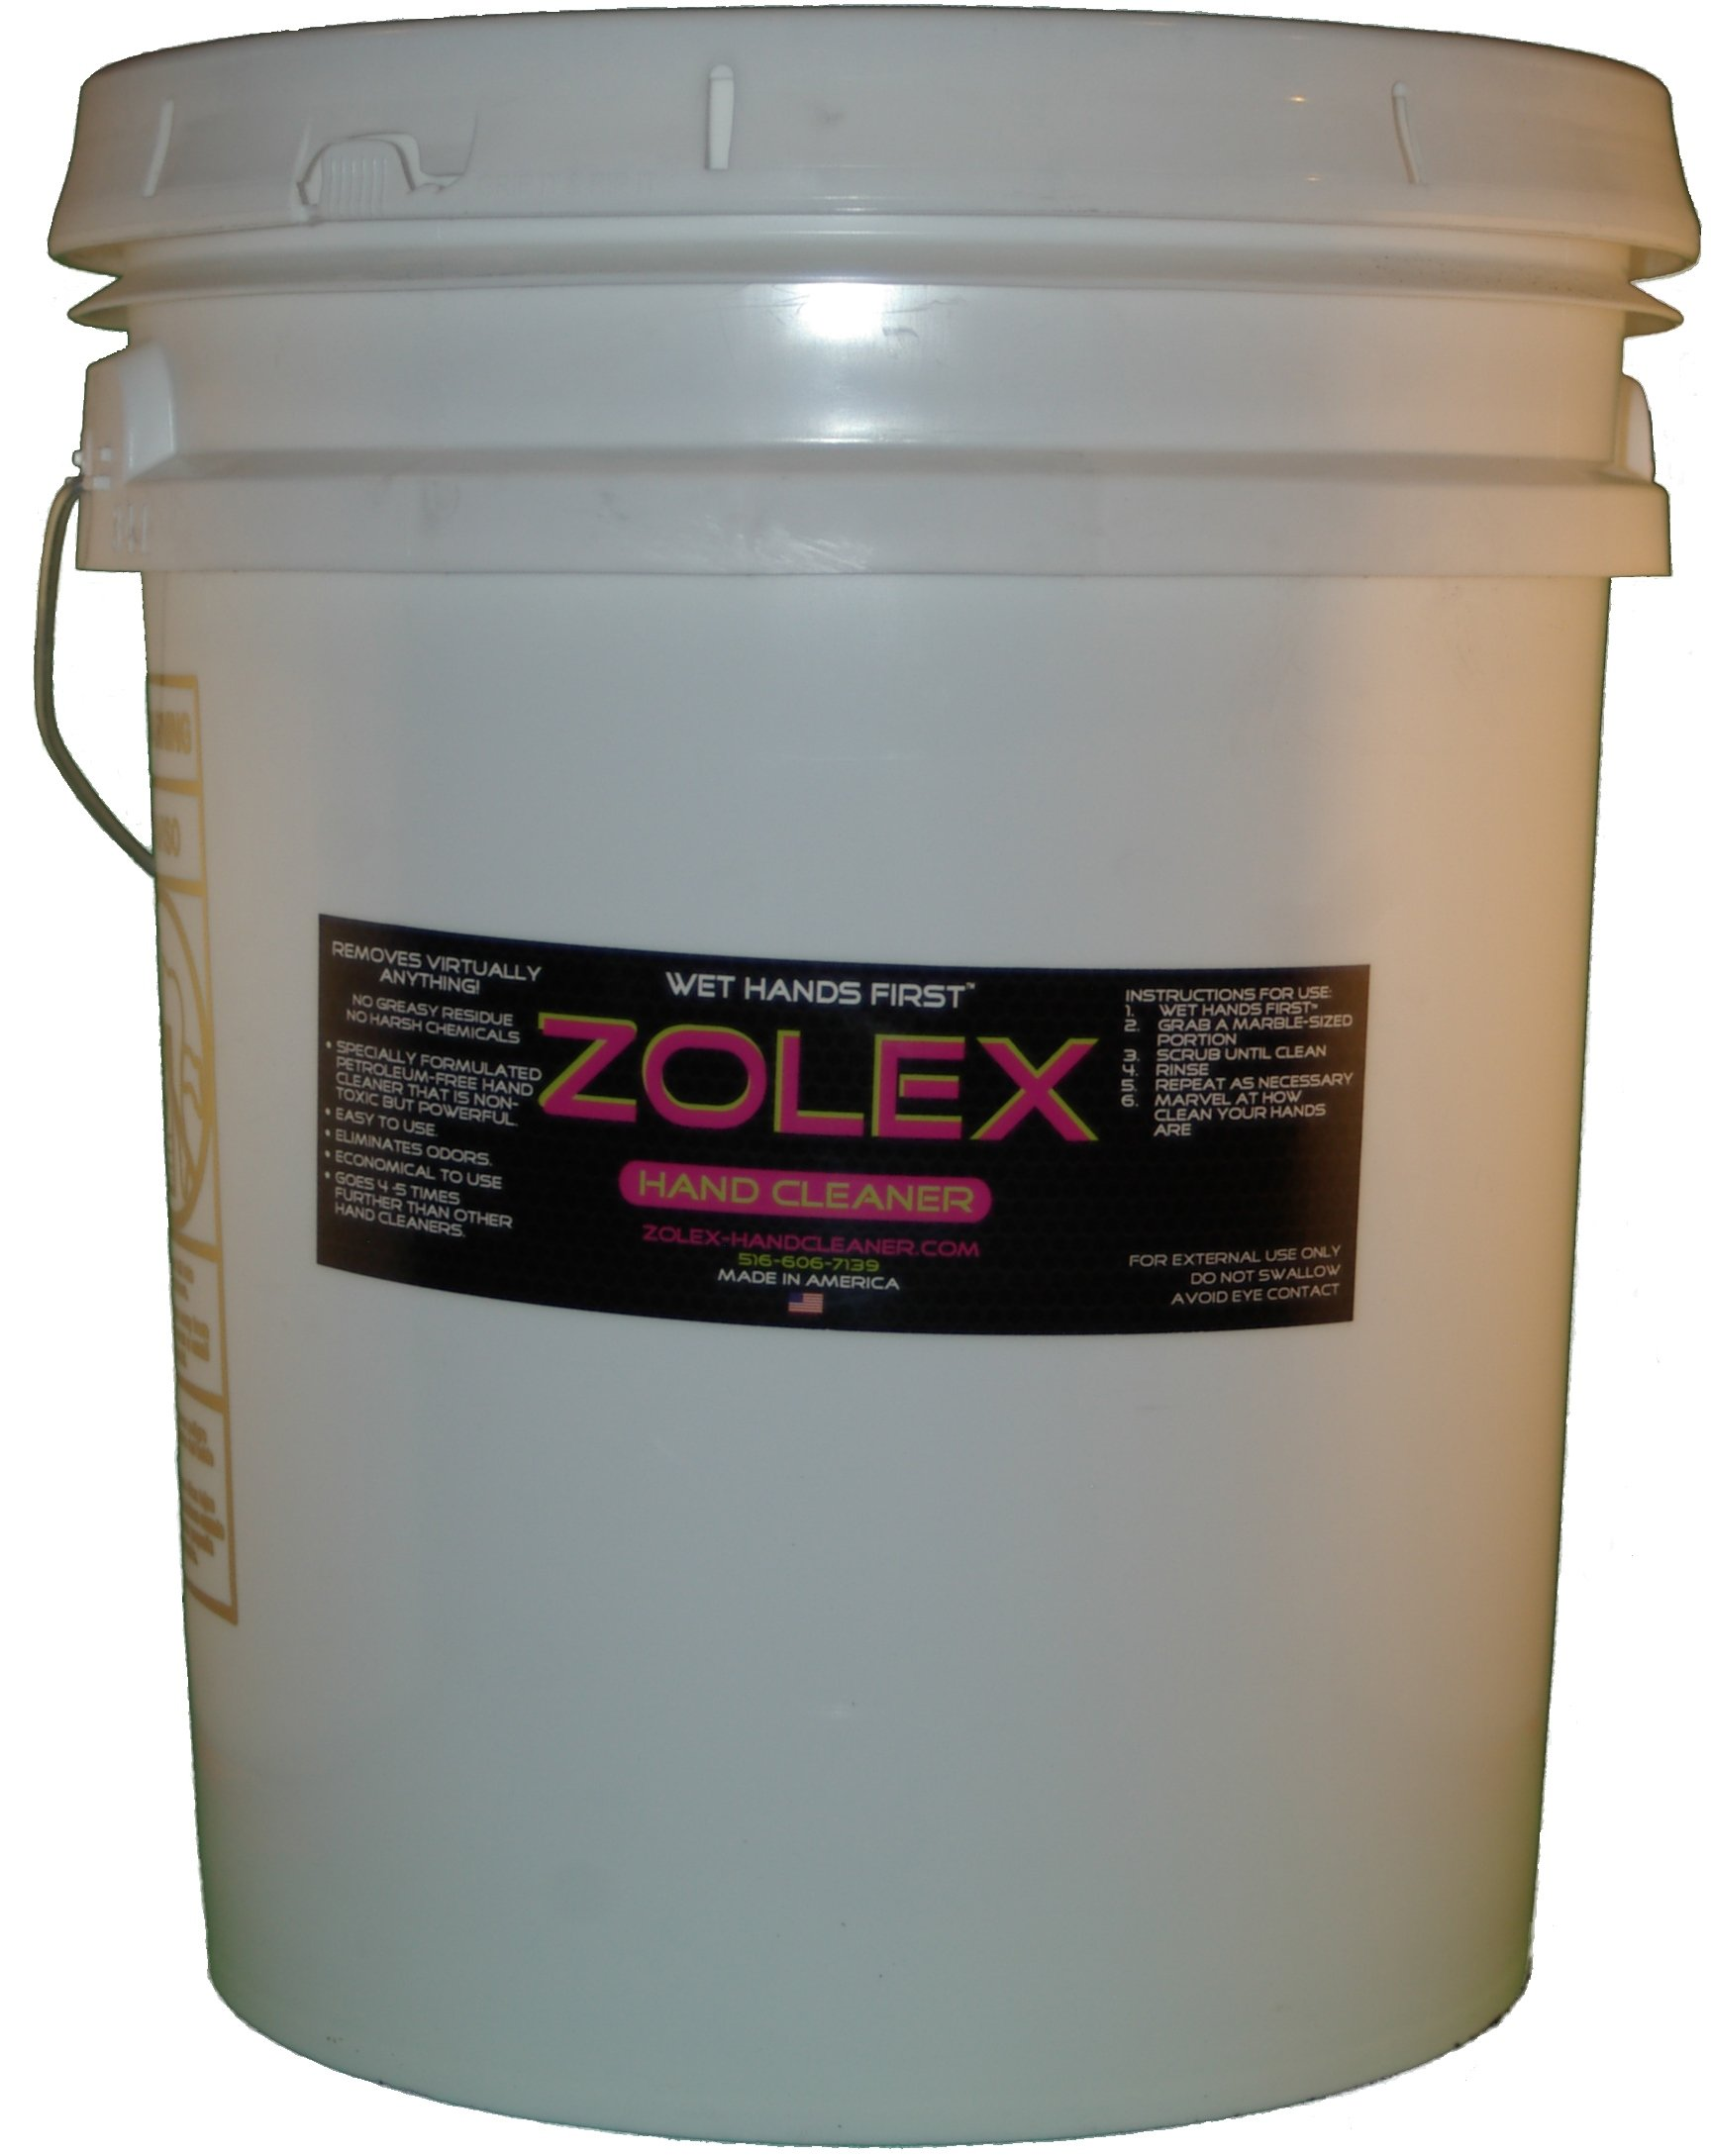 ZOLEX Water-Activated Hand Cleaner, Stain Remover, Non-Toxic, Petroleum-Free   Industrial-sized 25 lb Pail